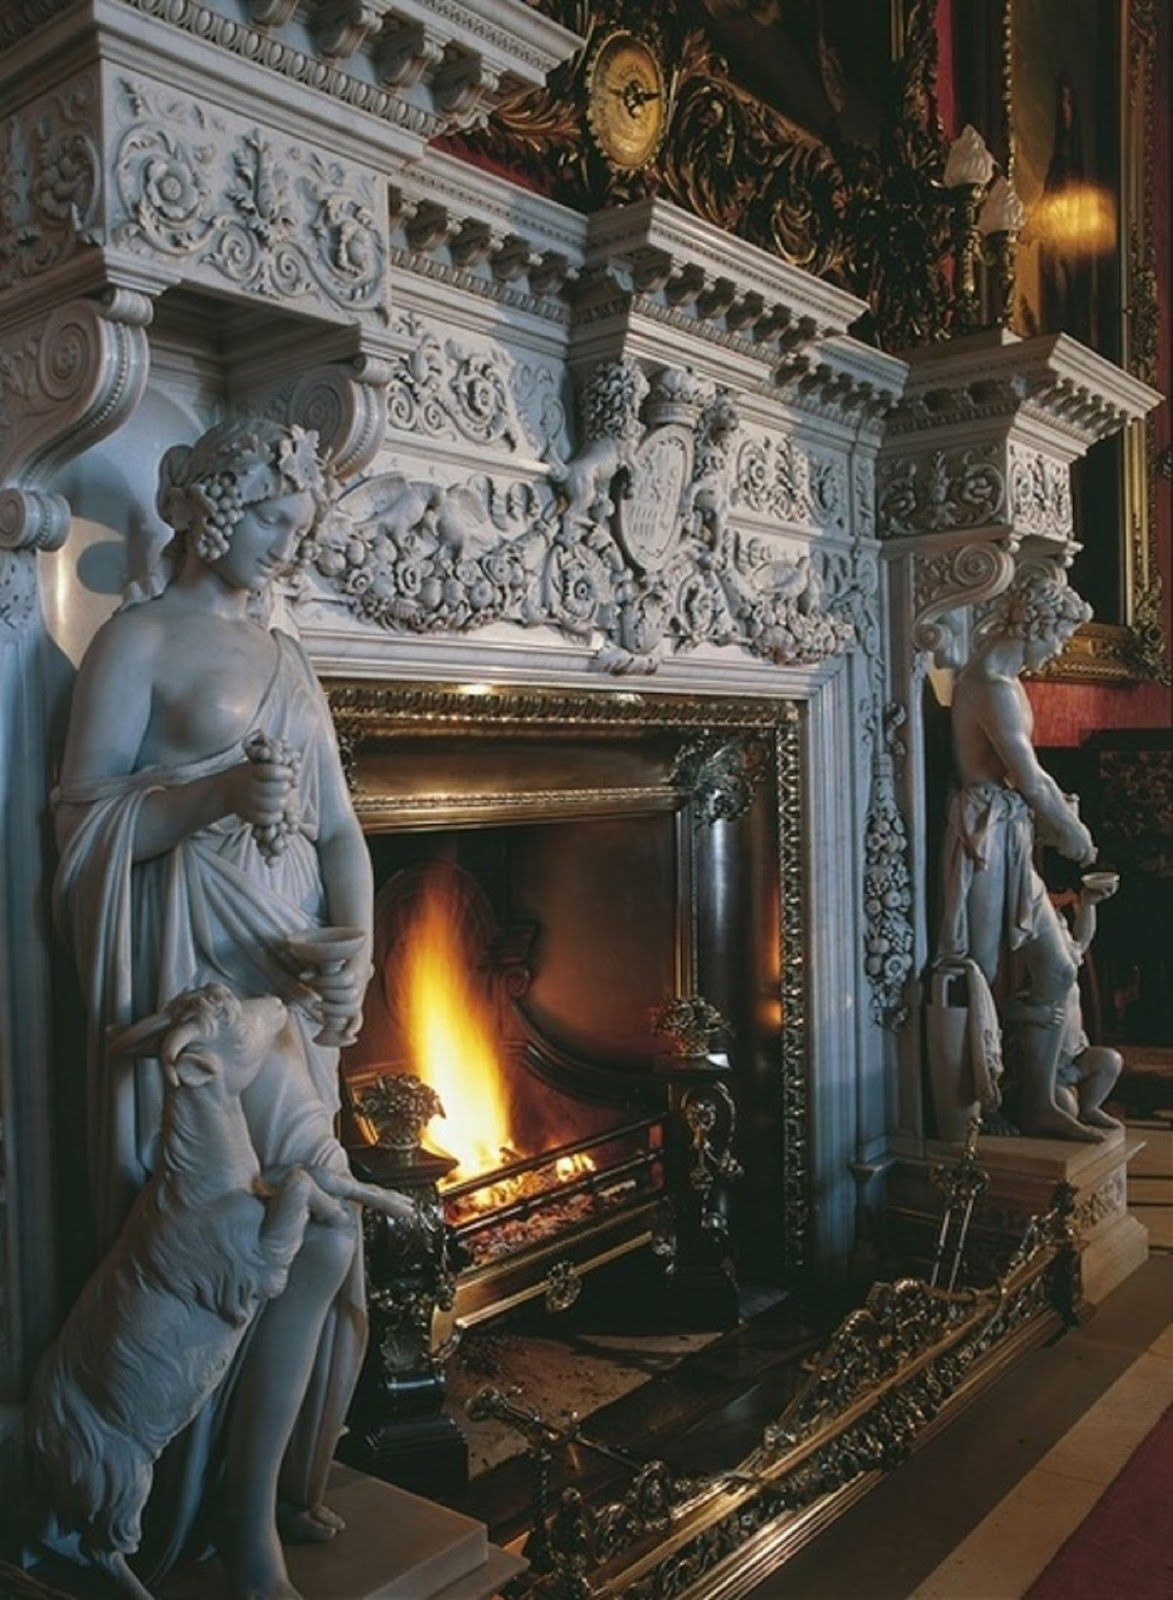 Oldgrandfatherclock Fireplace In Dining Room Of Alnwick Castle